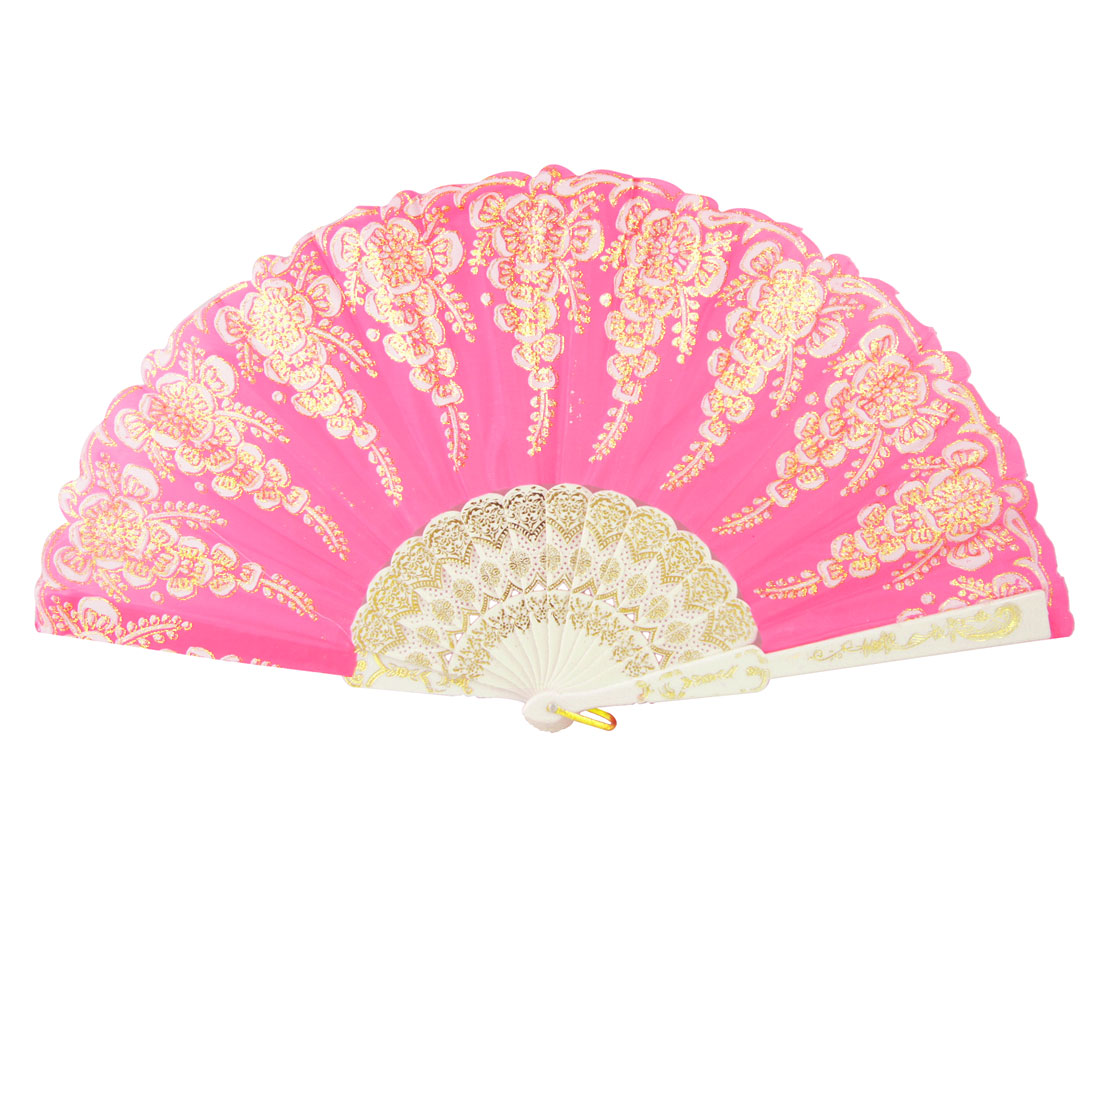 Lotus Leaf Painted Plastic Organza Fuchsia White Hand Folding Fan for Lady